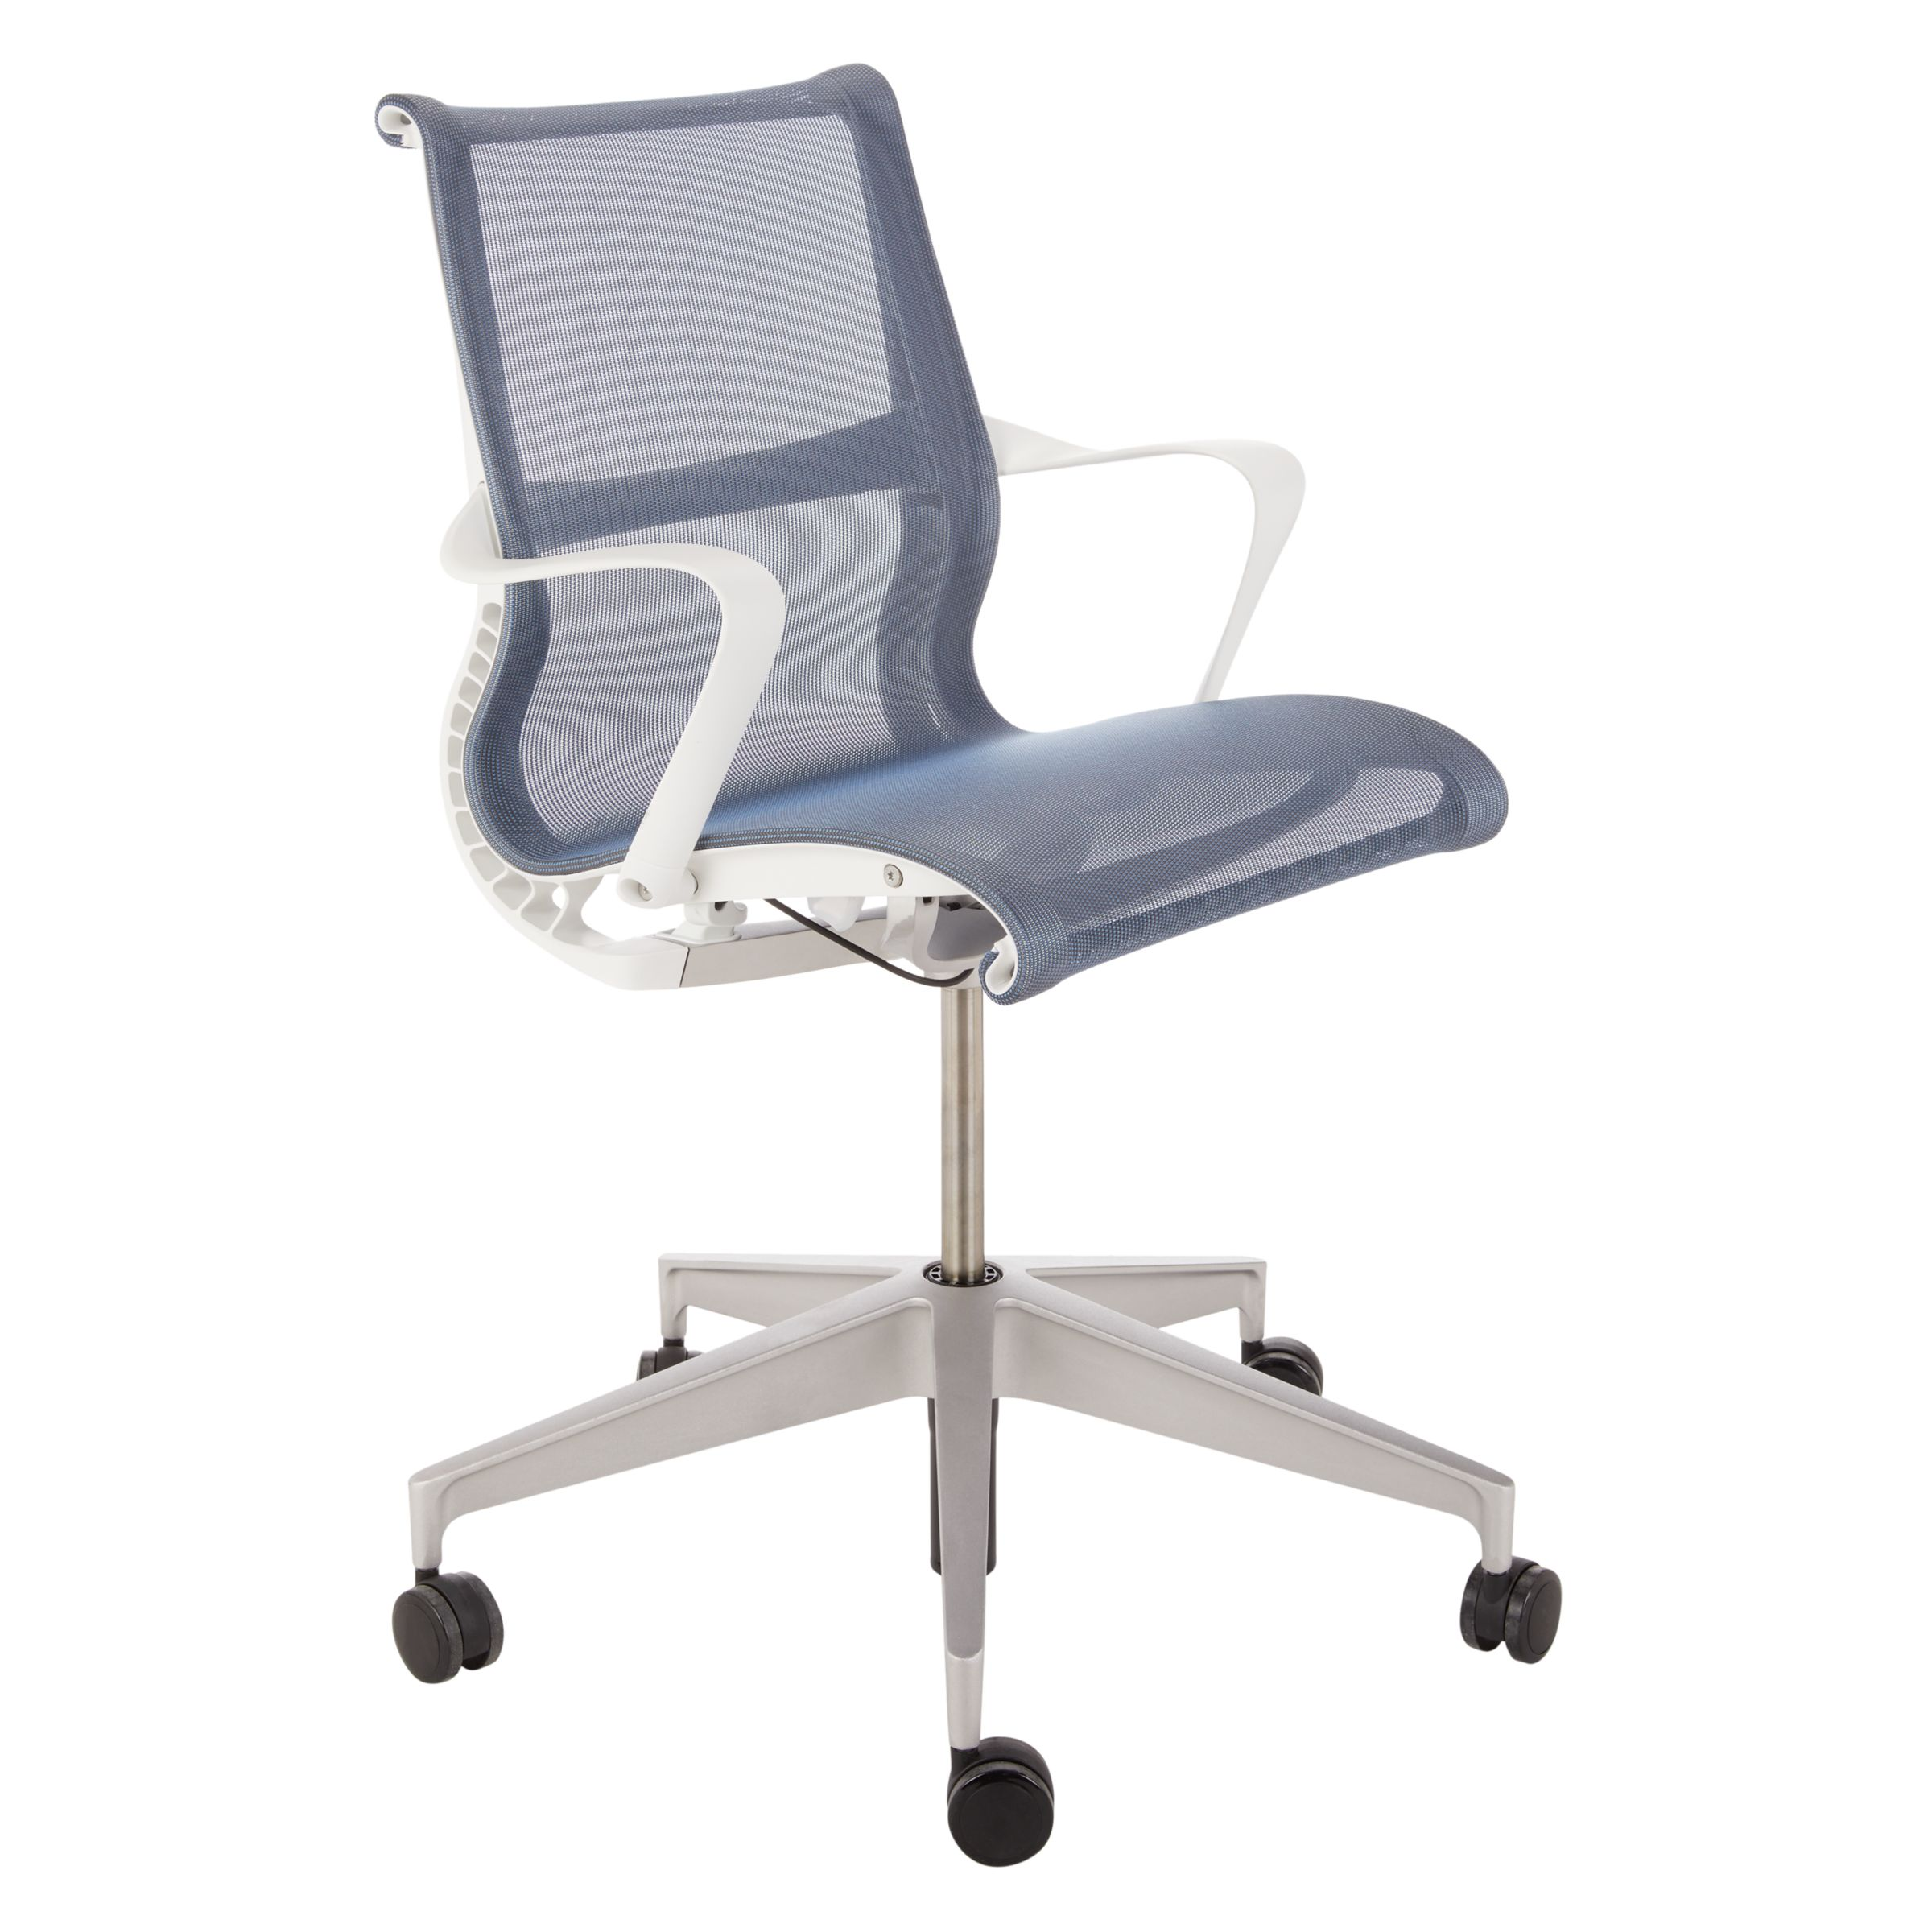 Herman Miller Herman Miller Setu Multi Purpose Chair